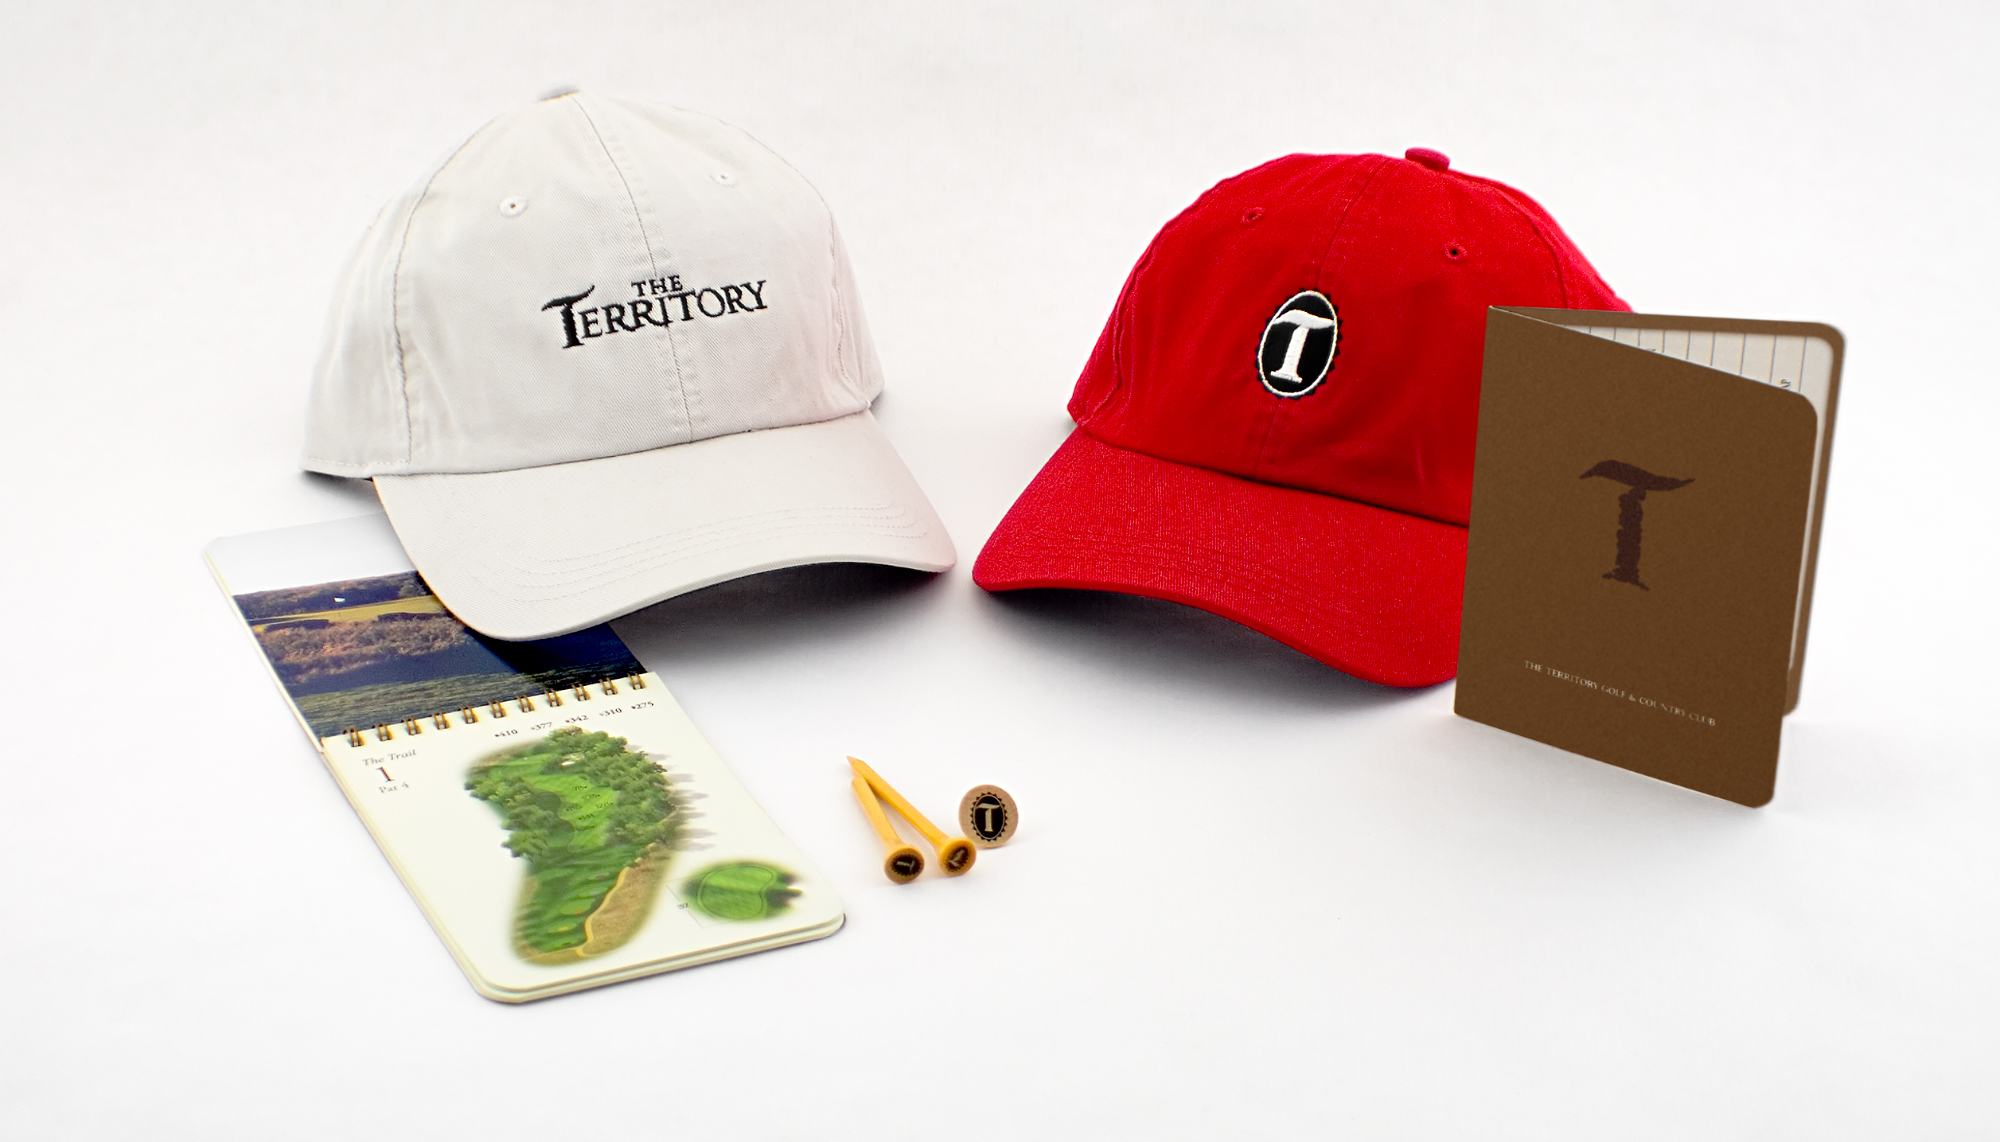 MERCHANDISE DESIGN - The Territory Golf & Country Club | hats, score pad - ©UnParalleled, LLC dba UP-Ideas / Roger Sawhill / Mark Braught - Atlanta, Georgia | Lawrenceville, Georgia | Commerce, Georgia